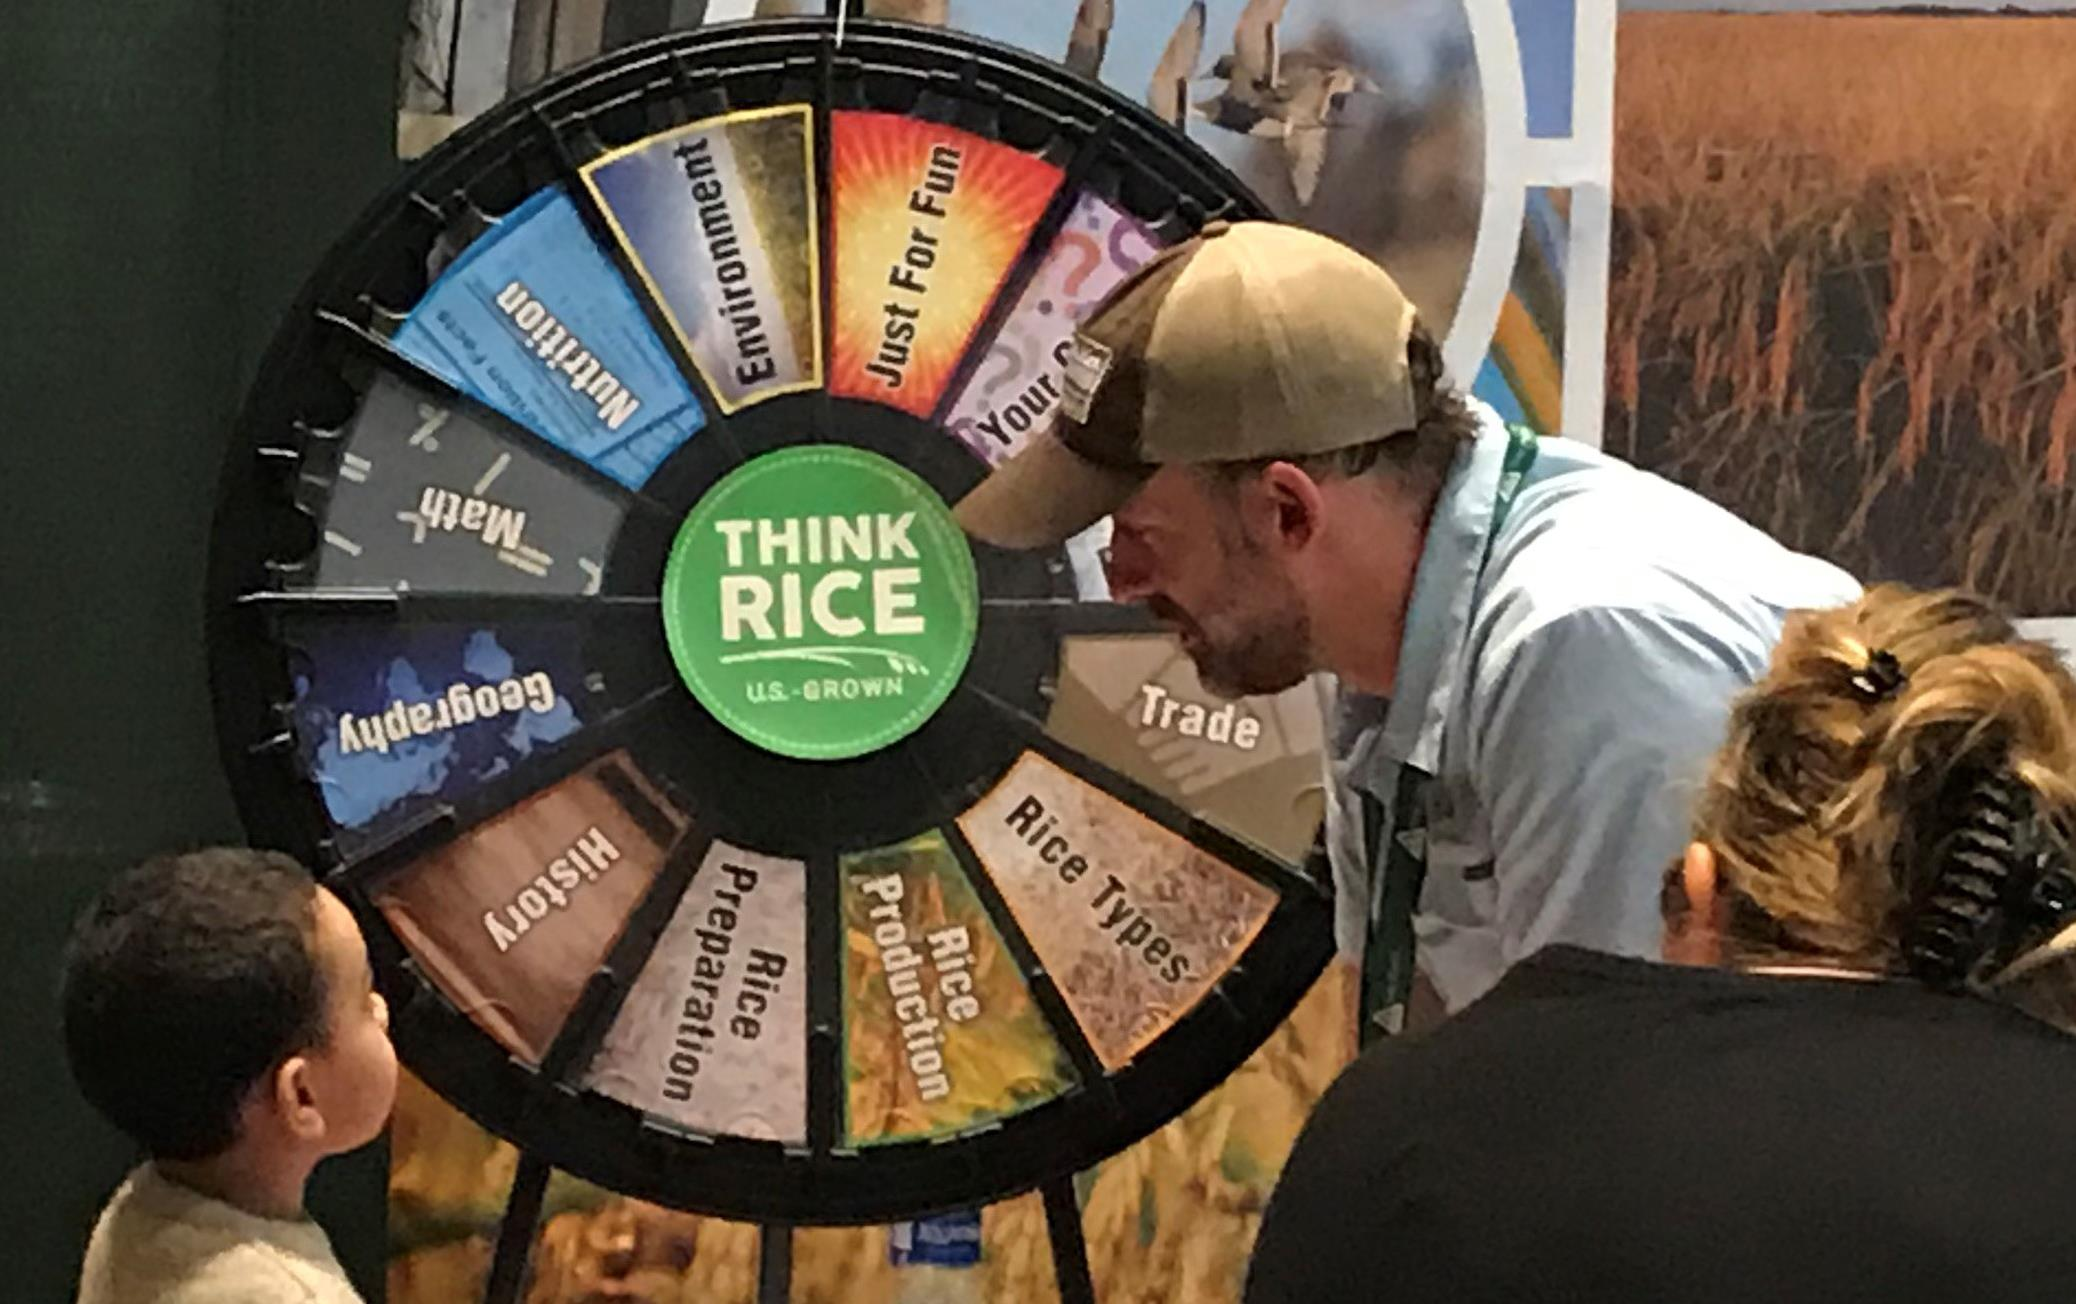 Children line up for their chance at the Think Rice trivia wheel sitting on a table draped in an American flag tablecloth, man wearing ballcap leans over to talk to small boy getting ready to spin the wheel